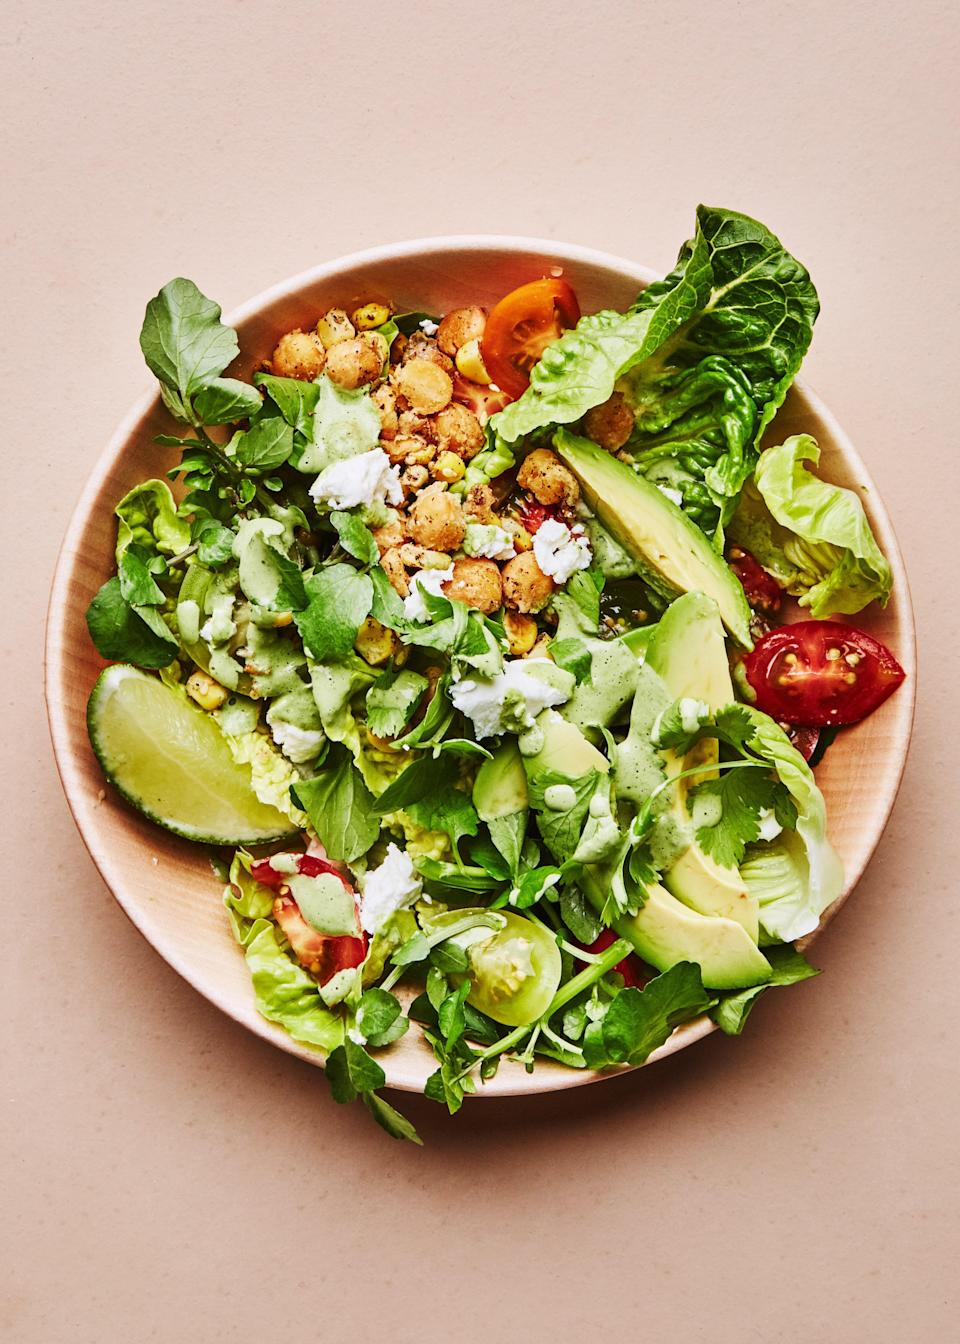 "This recipe will work long after corn has gone out of season. In winter, just sub shaved cauliflower or torn kale. <a href=""https://www.bonappetit.com/recipe/corn-and-chickpea-bowl-with-miso-jalapeno-tahini?mbid=synd_yahoo_rss"" rel=""nofollow noopener"" target=""_blank"" data-ylk=""slk:See recipe."" class=""link rapid-noclick-resp"">See recipe.</a>"